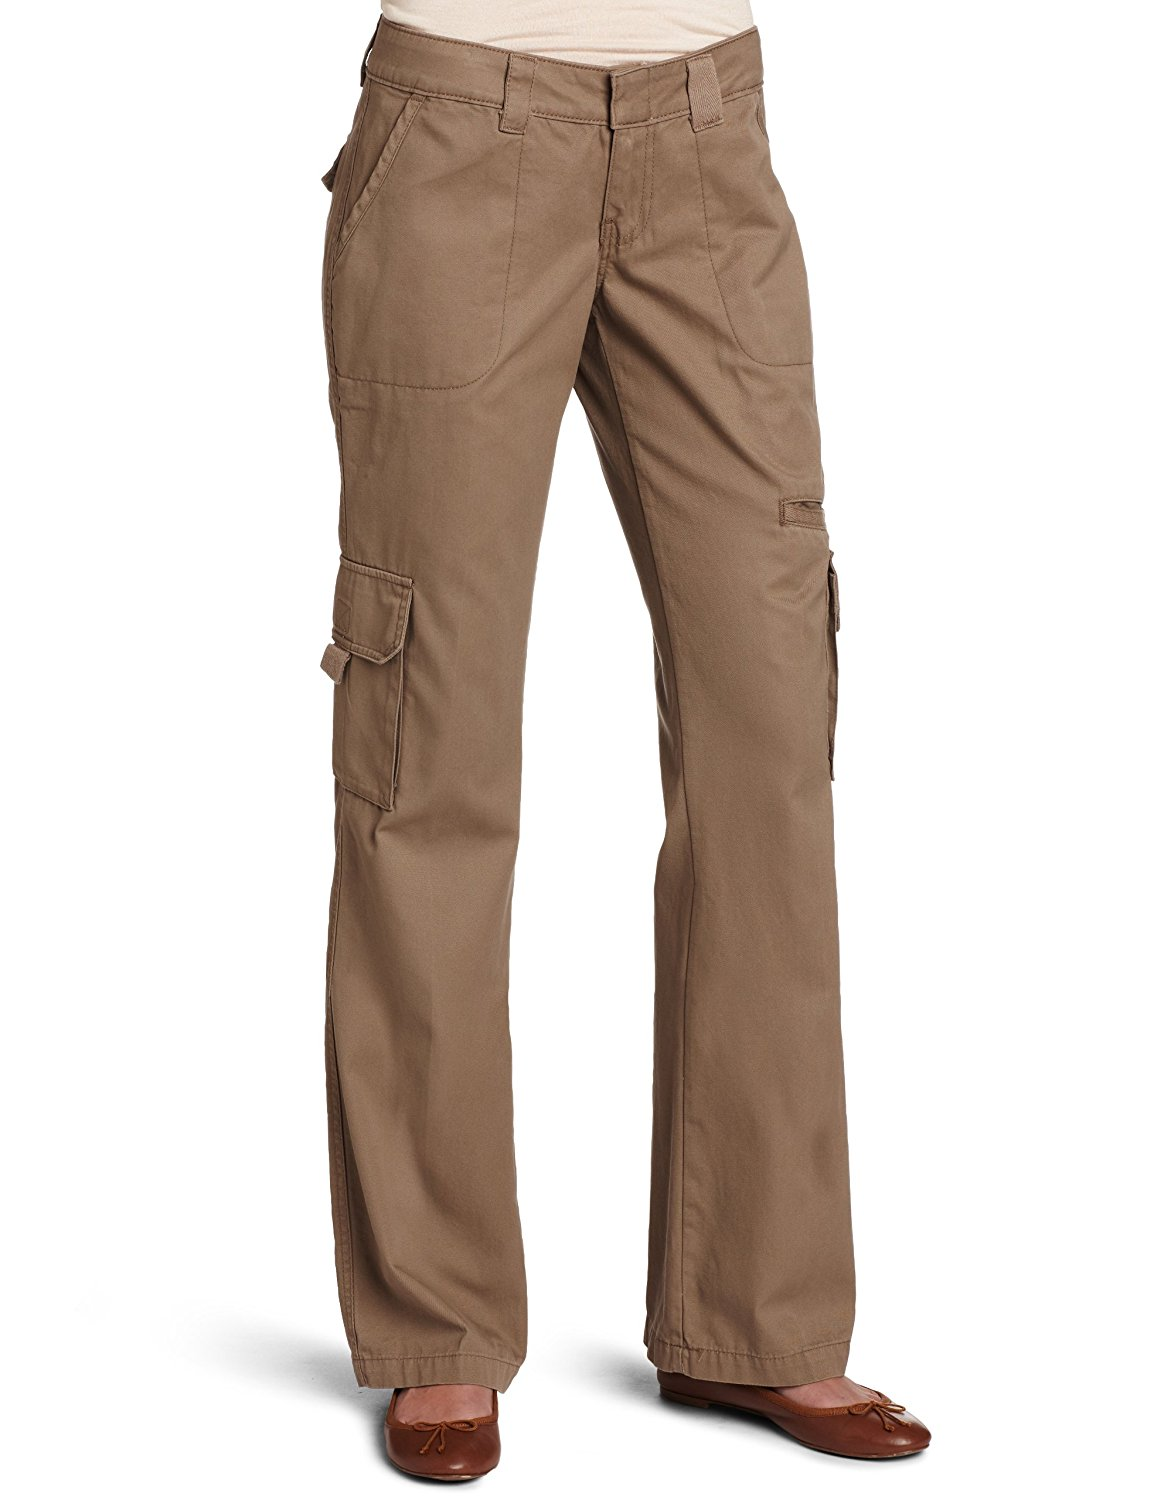 cargo pants for women amazon.com: dickies womenu0027s relaxed fit straight leg cargo pant: clothing onsqxfu